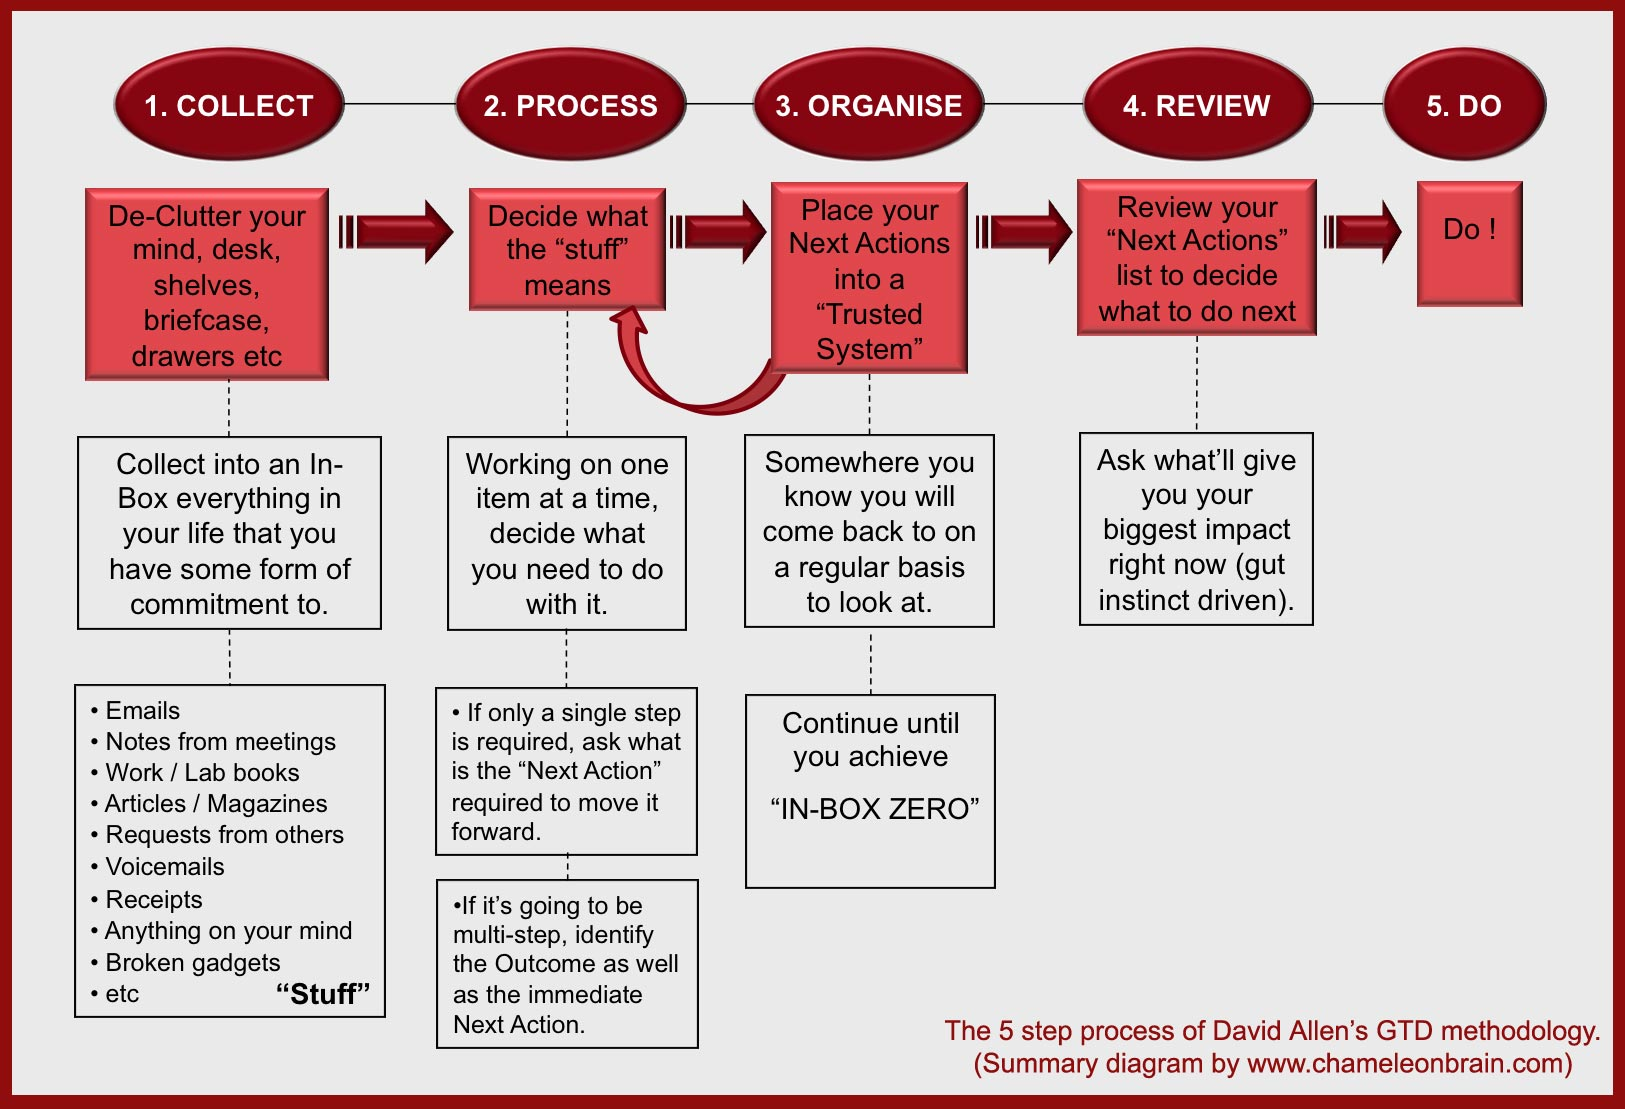 The 5 Step GTD Process Flow